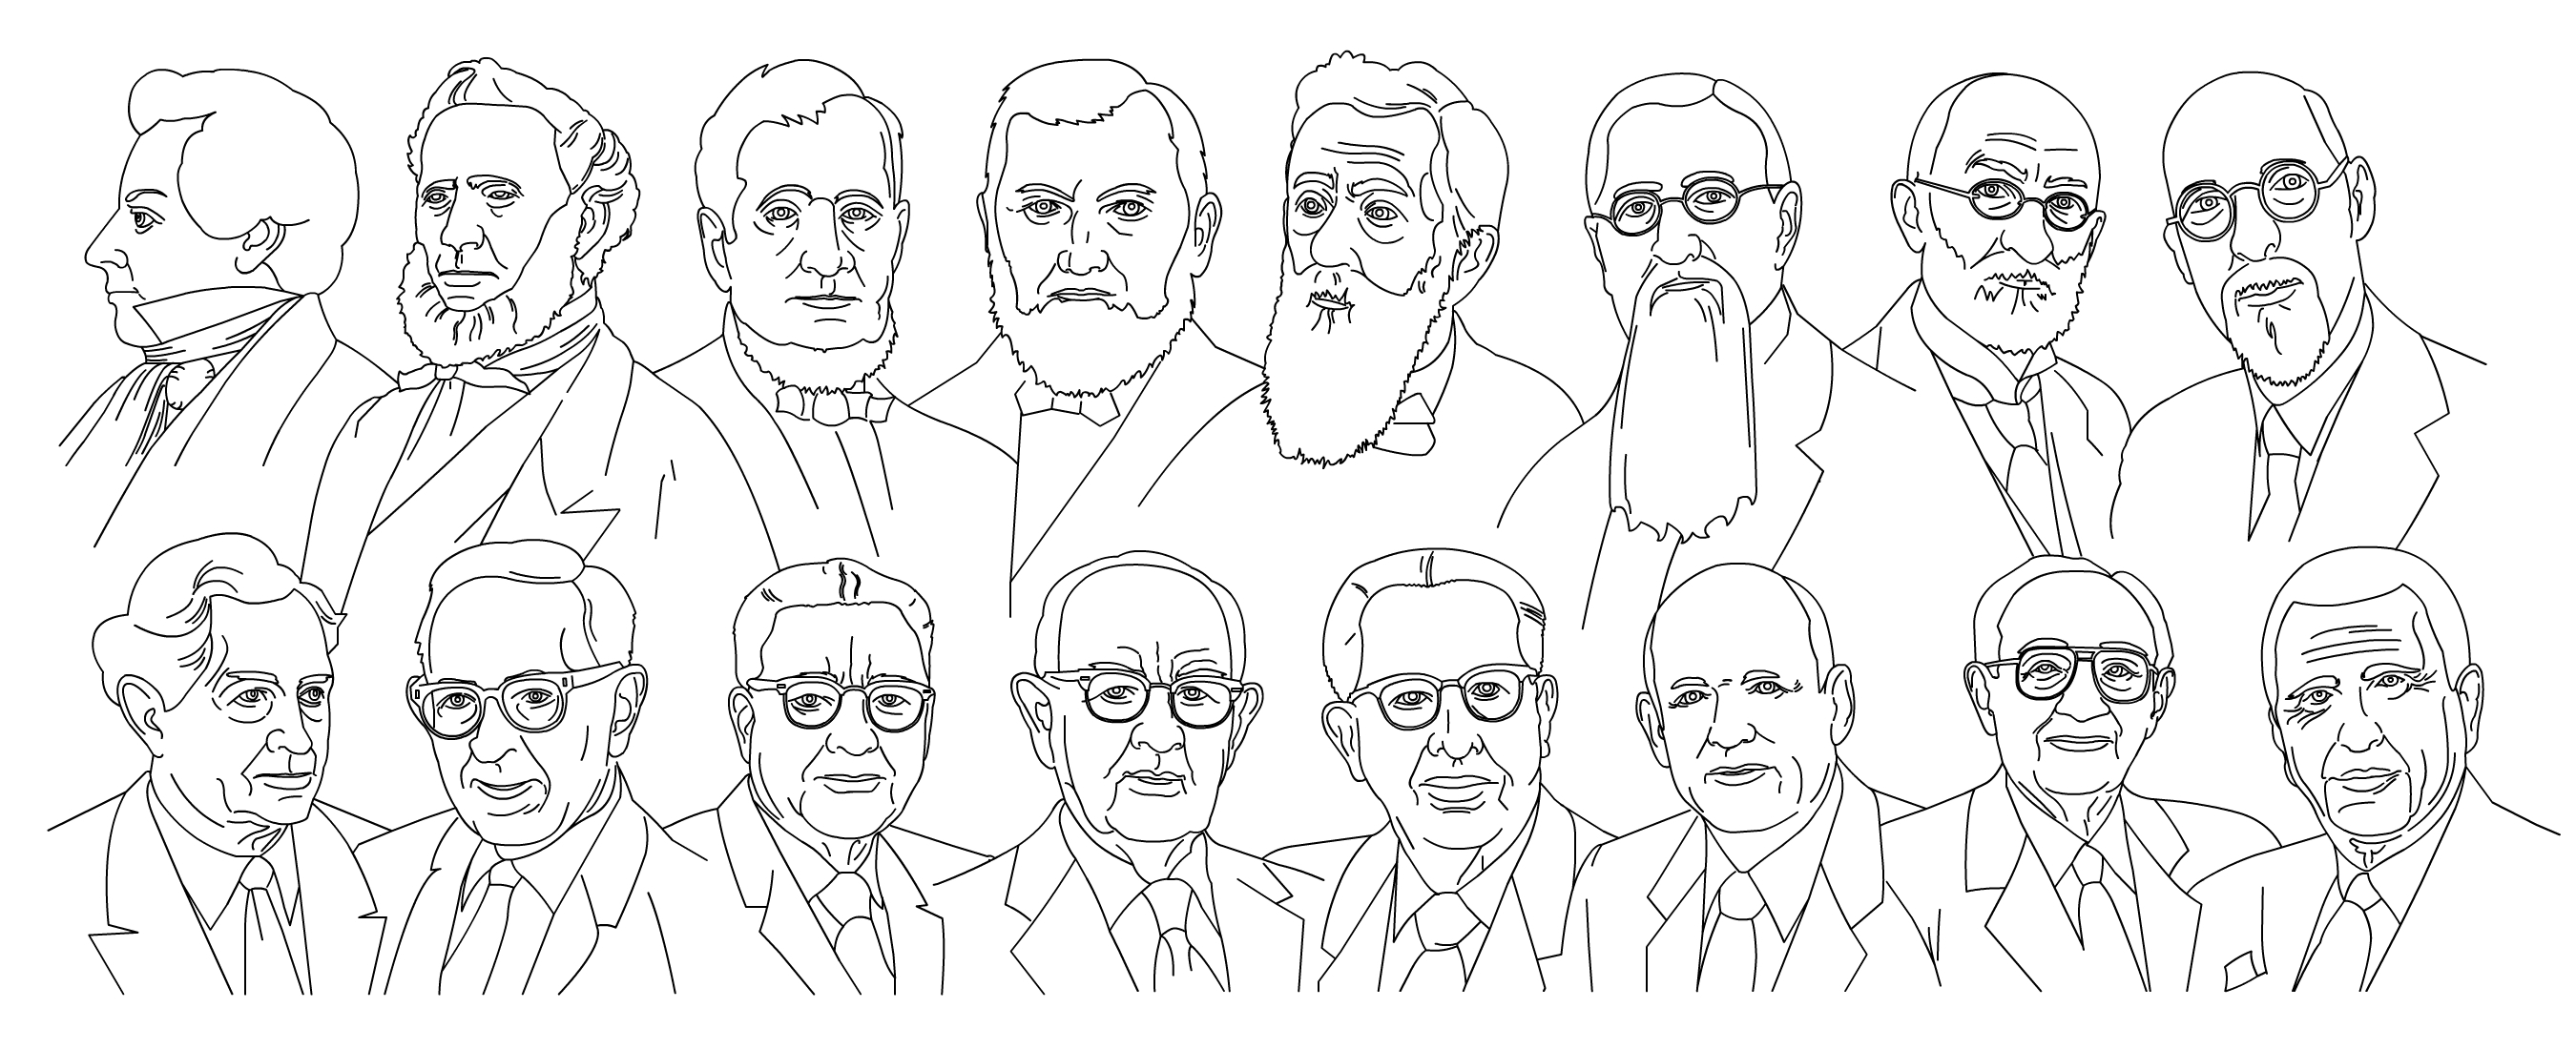 joseph smith coloring pages - prophets clip art